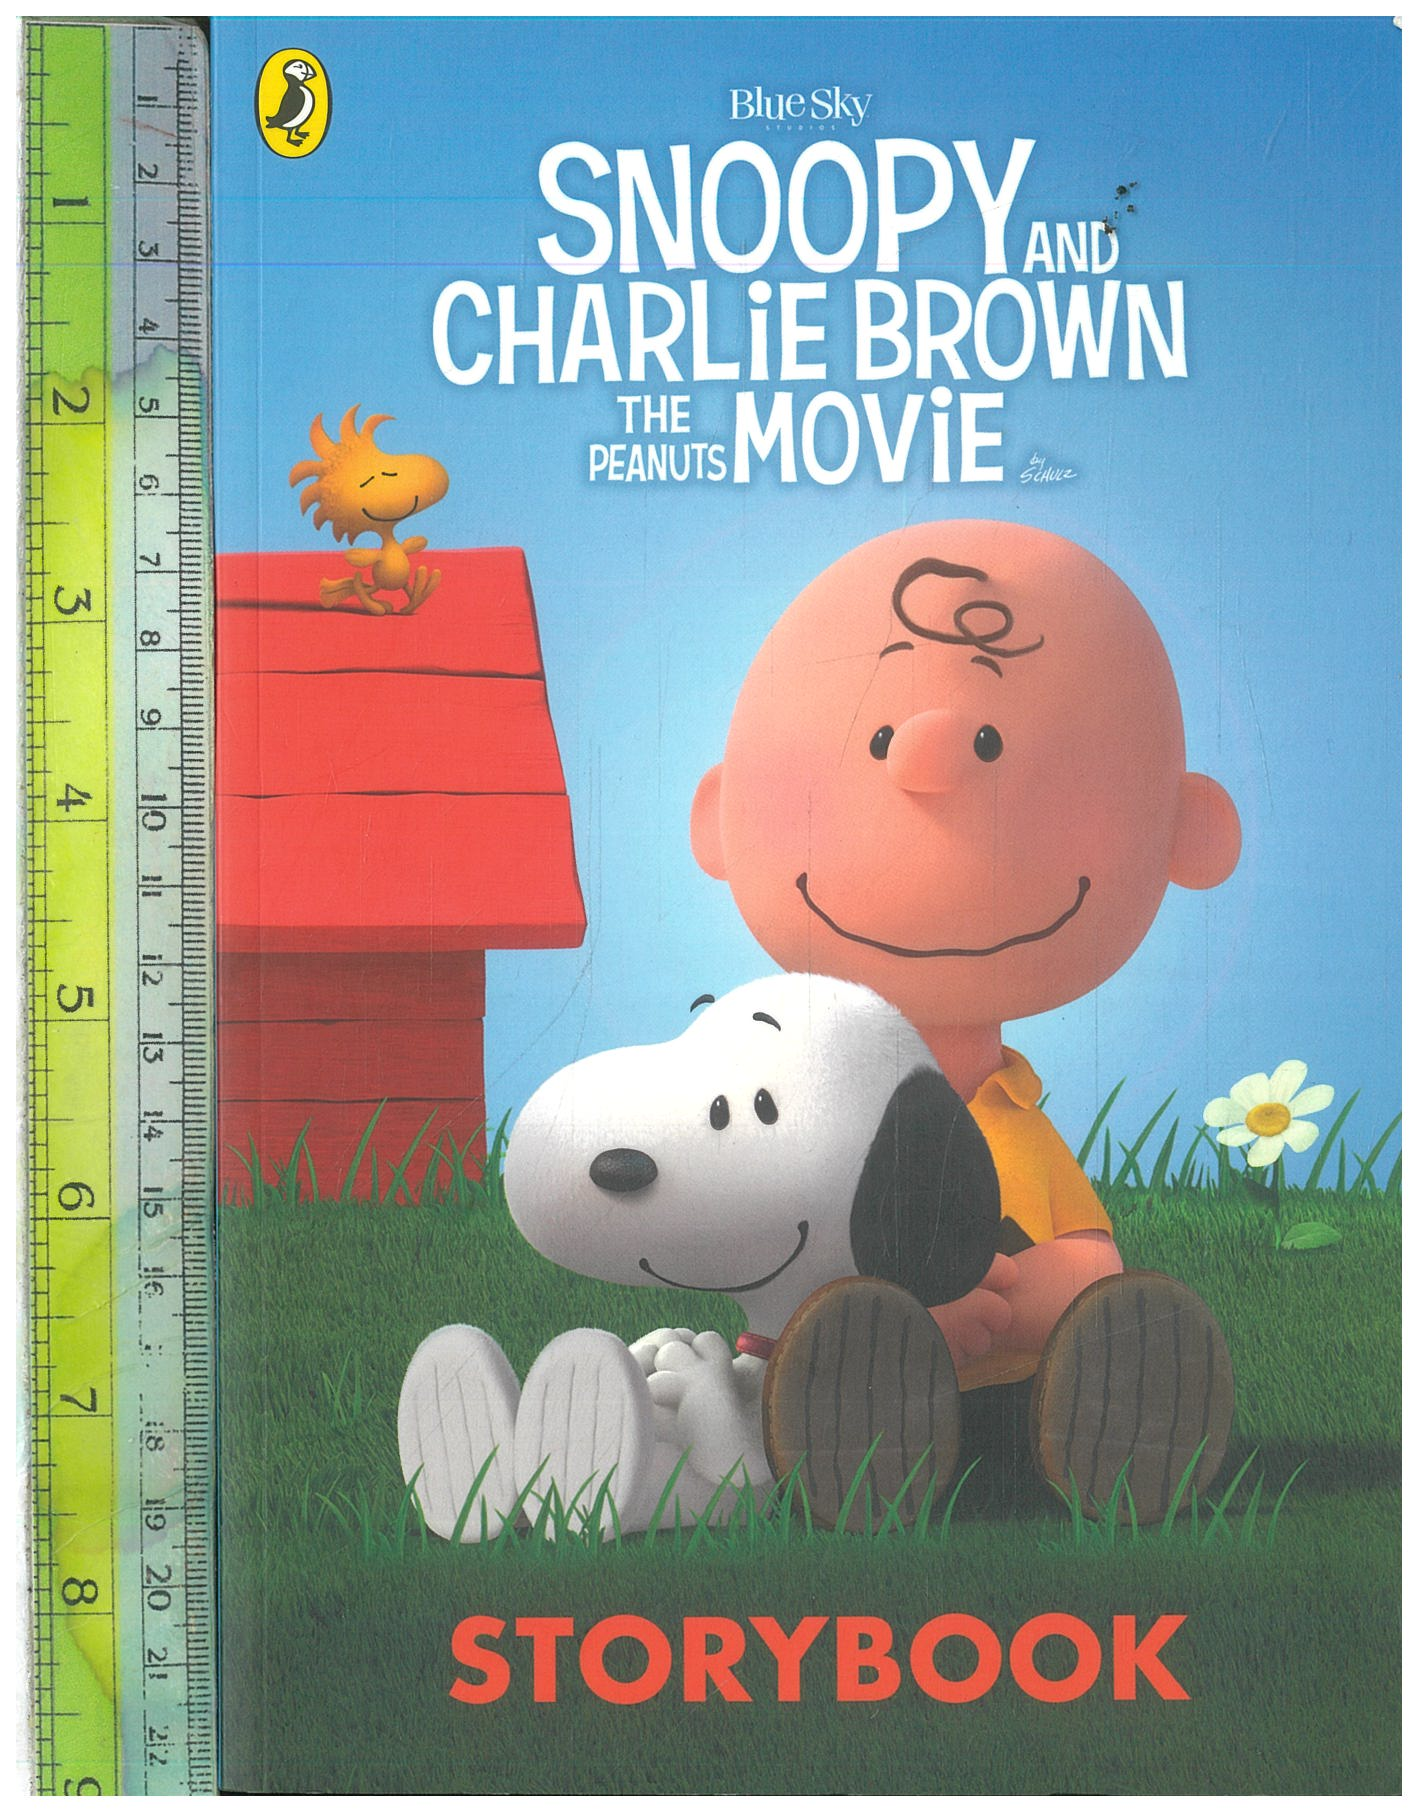 Snoopy and Charlie broen